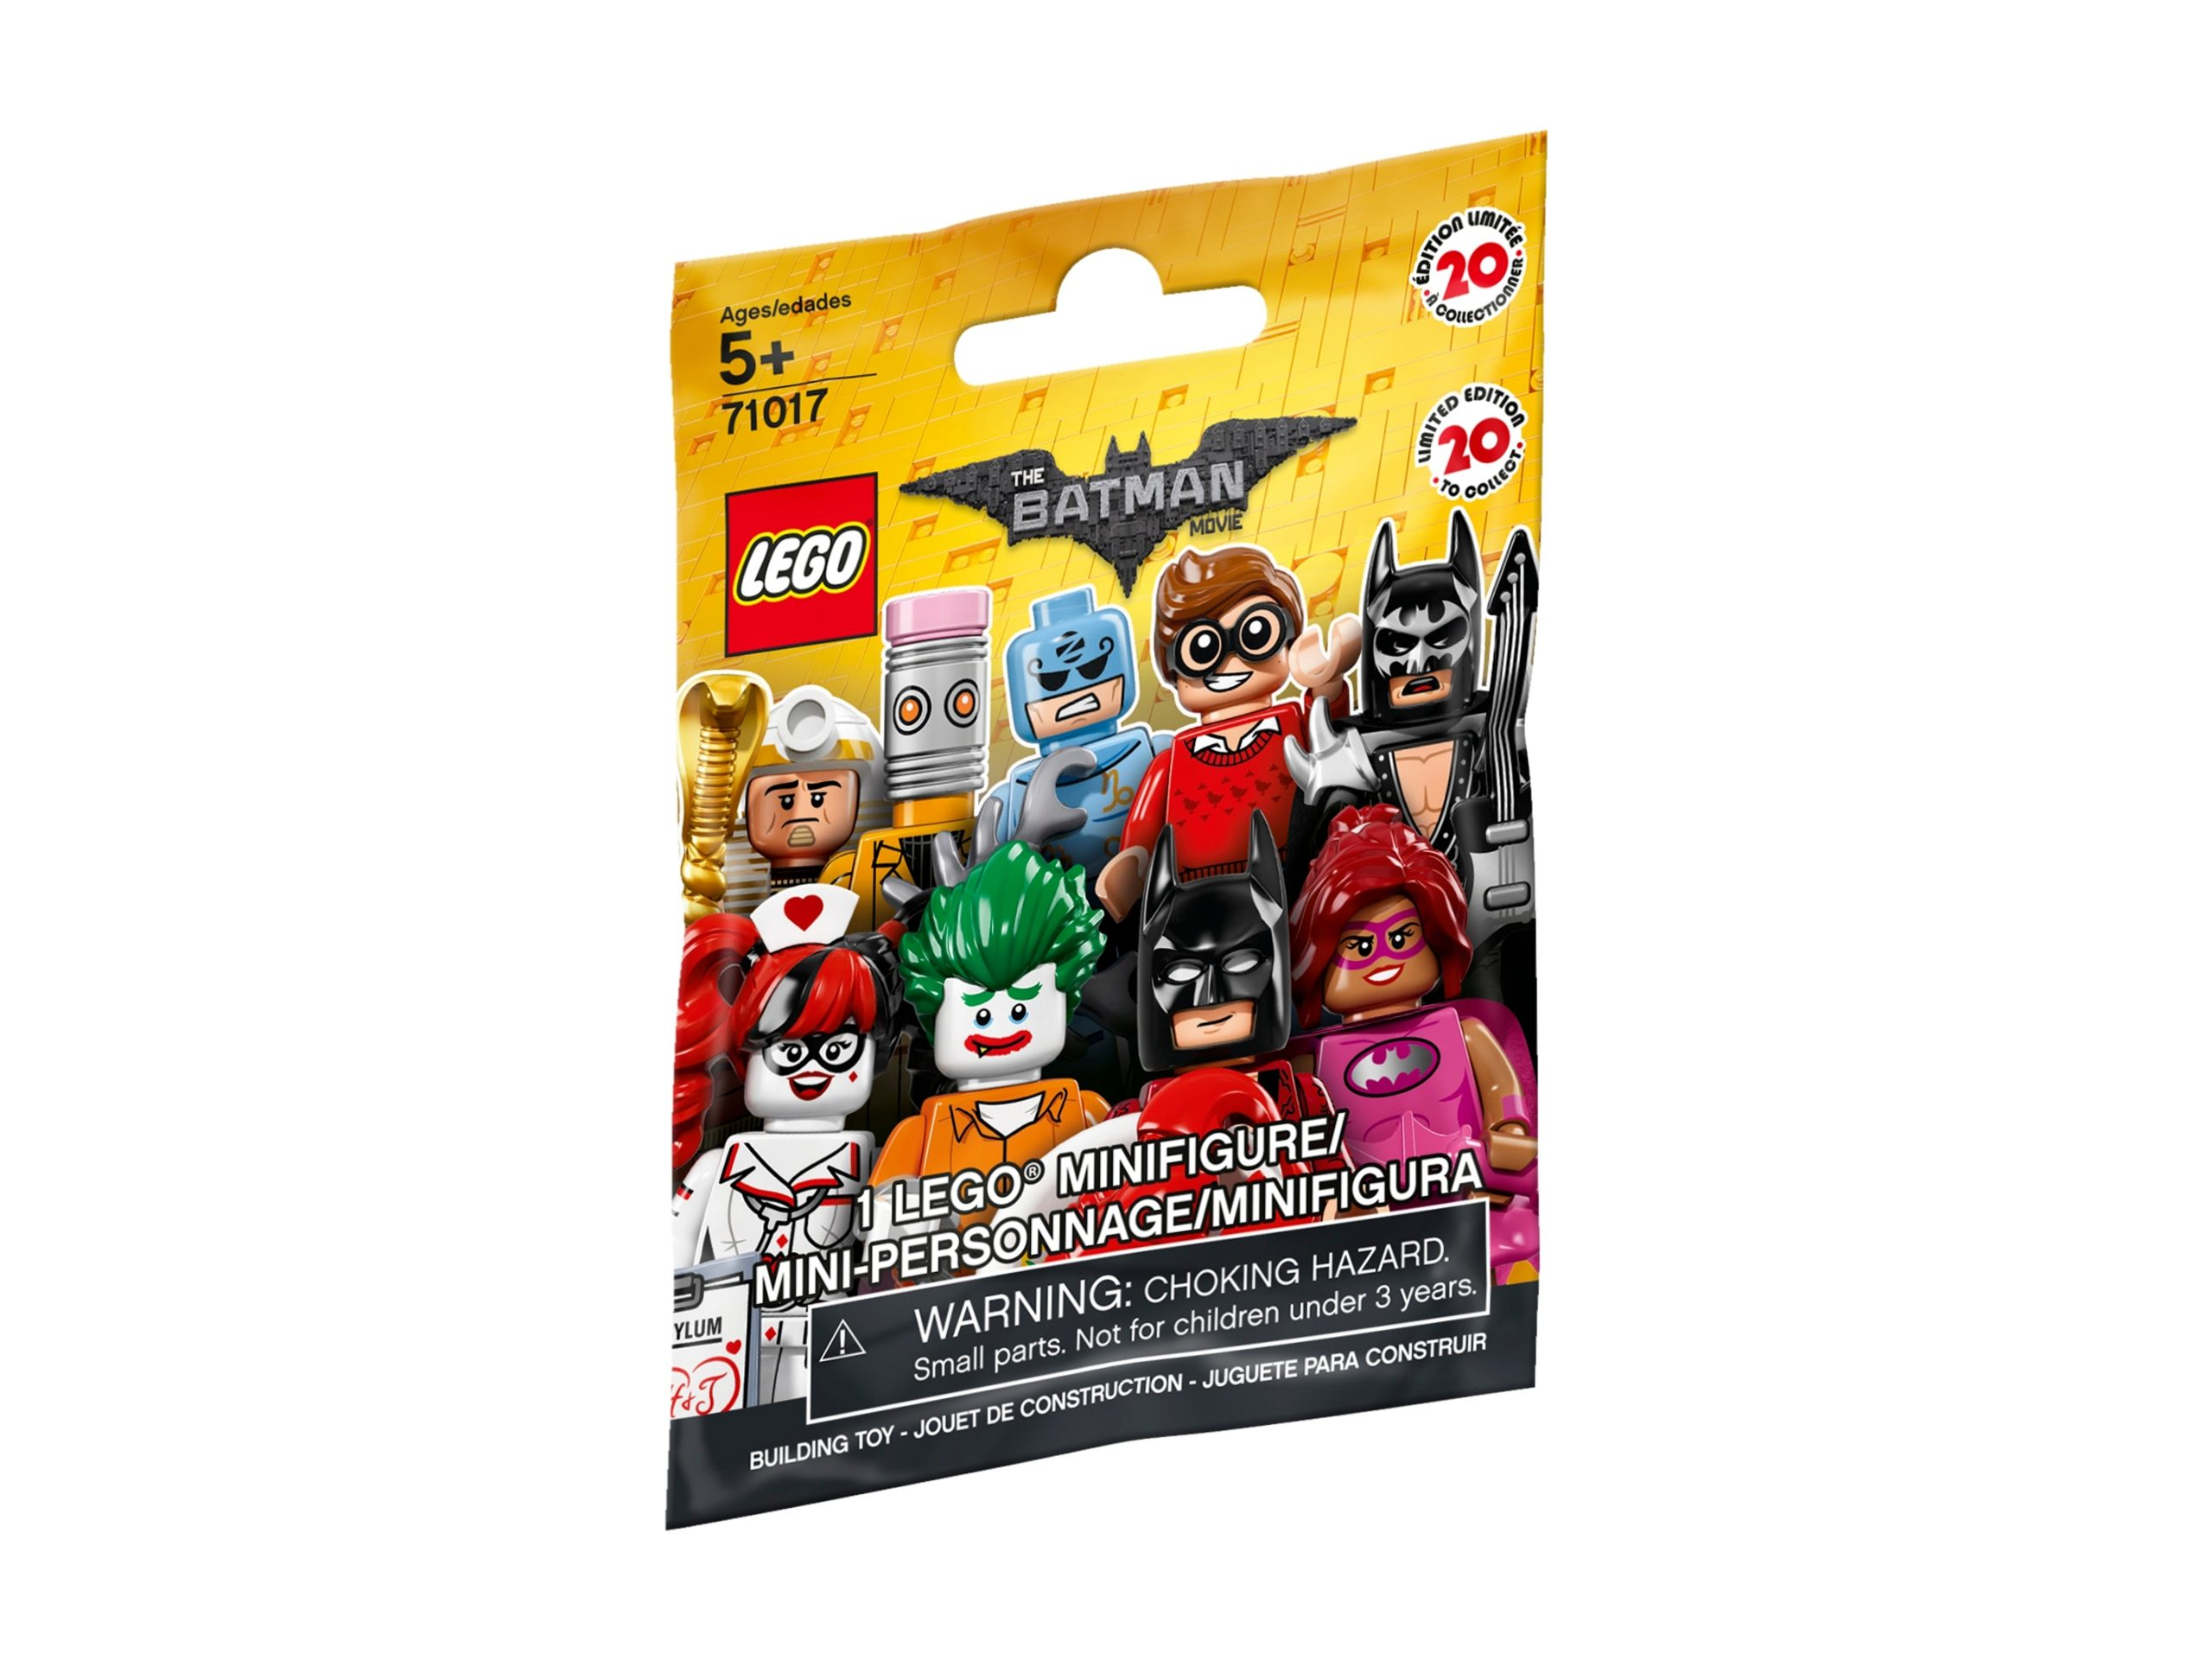 lego 71017 batman movie scaled